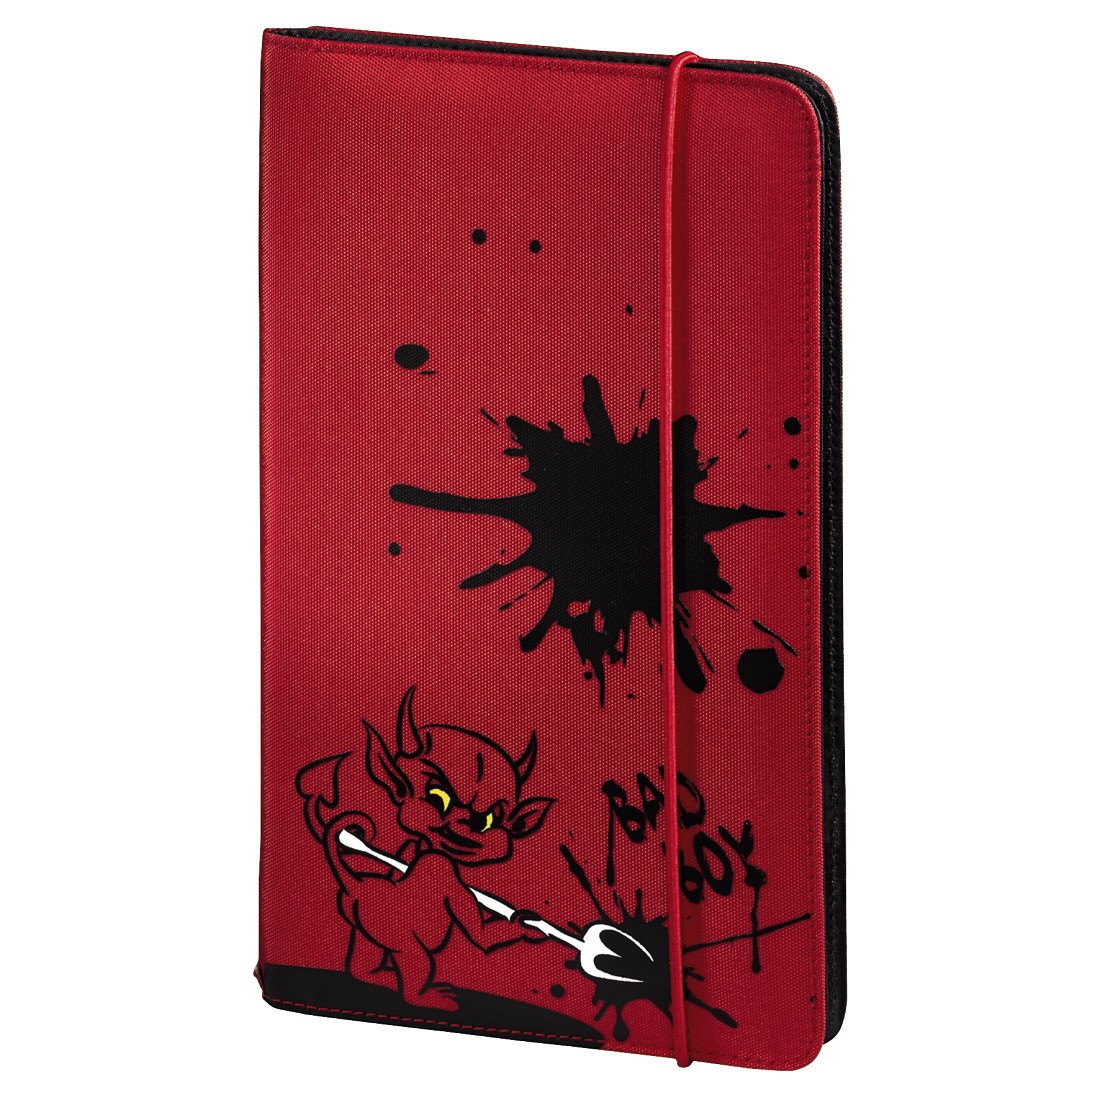 abx High-Res Image - Hama, UTF CD/DVD WALLET 48,RED